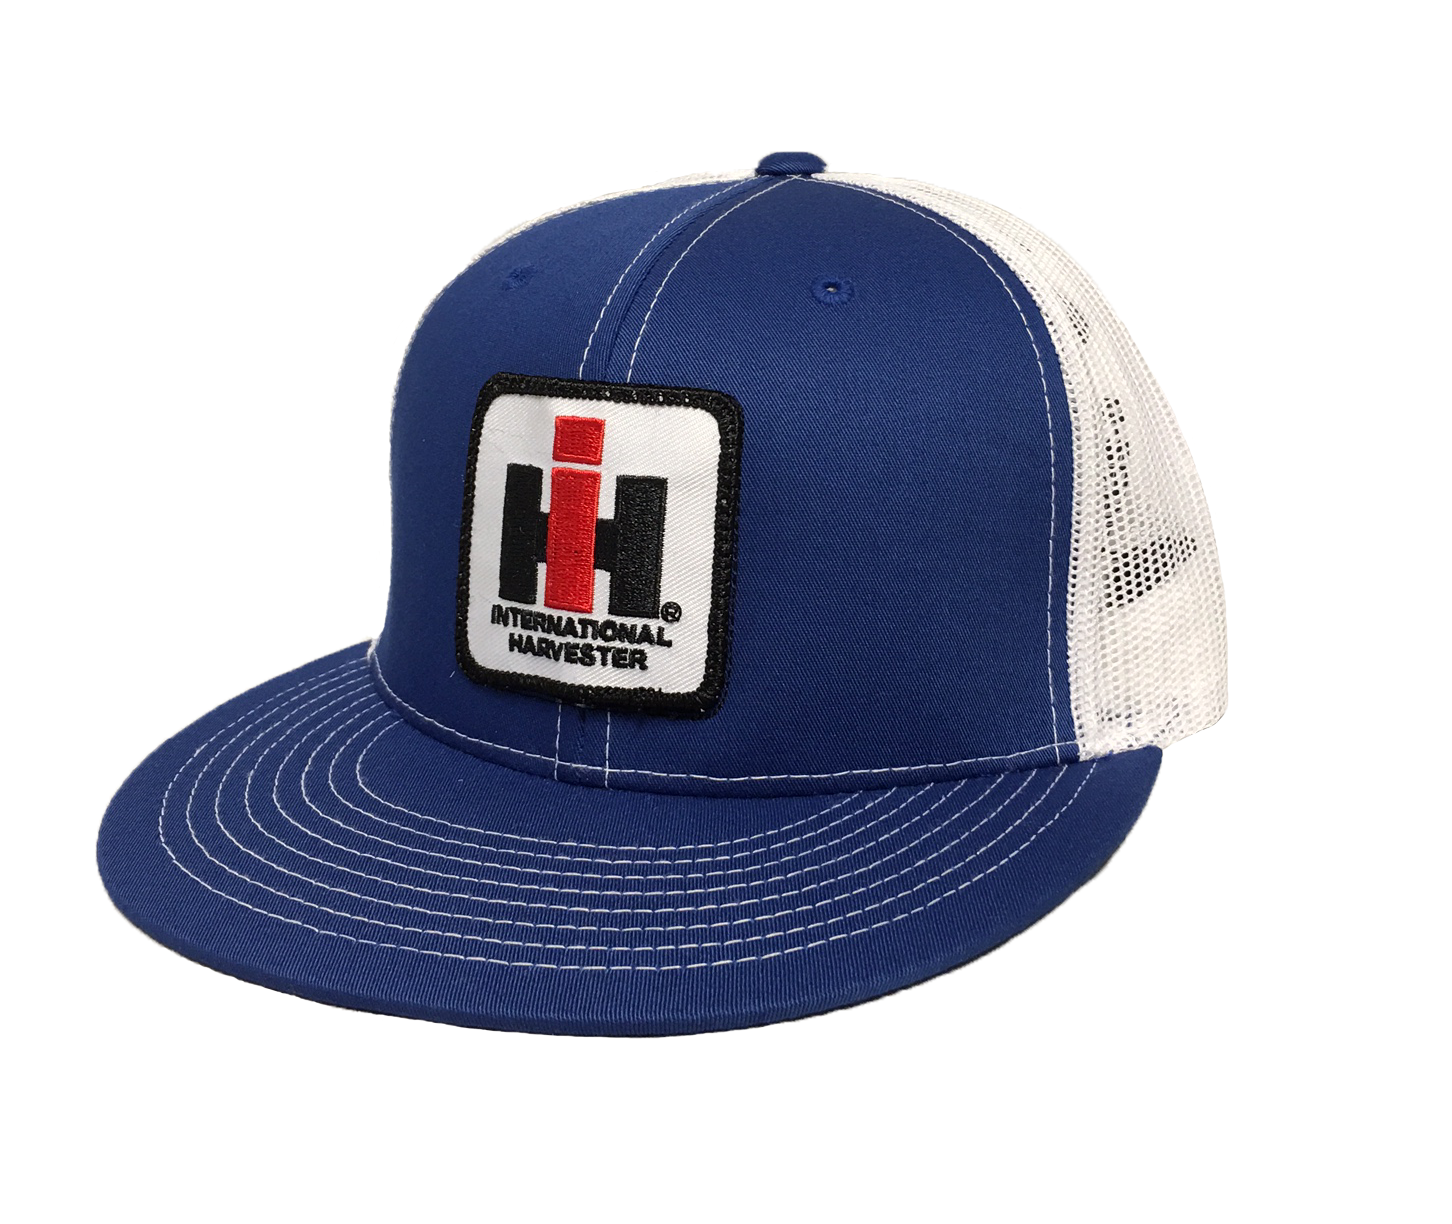 DAMAGED IH Mesh Trucker Cap - Blue